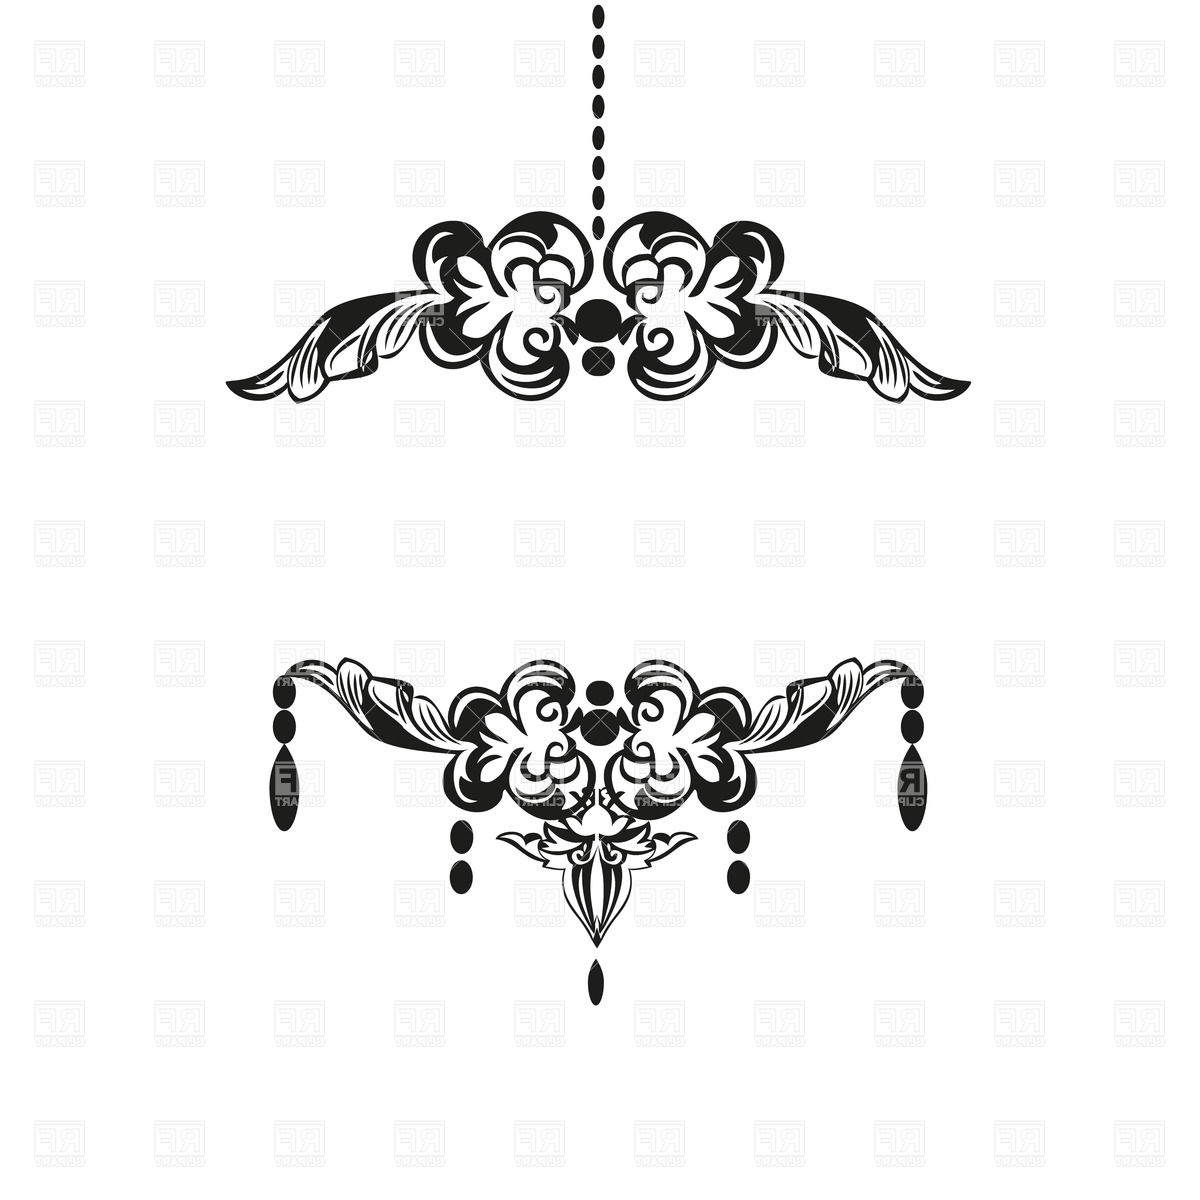 Vintage Black Chandelier Intended For Most Popular Black Vintage Chandelier Silhouette Royalty Free Vector Clip Art (Gallery 18 of 20)